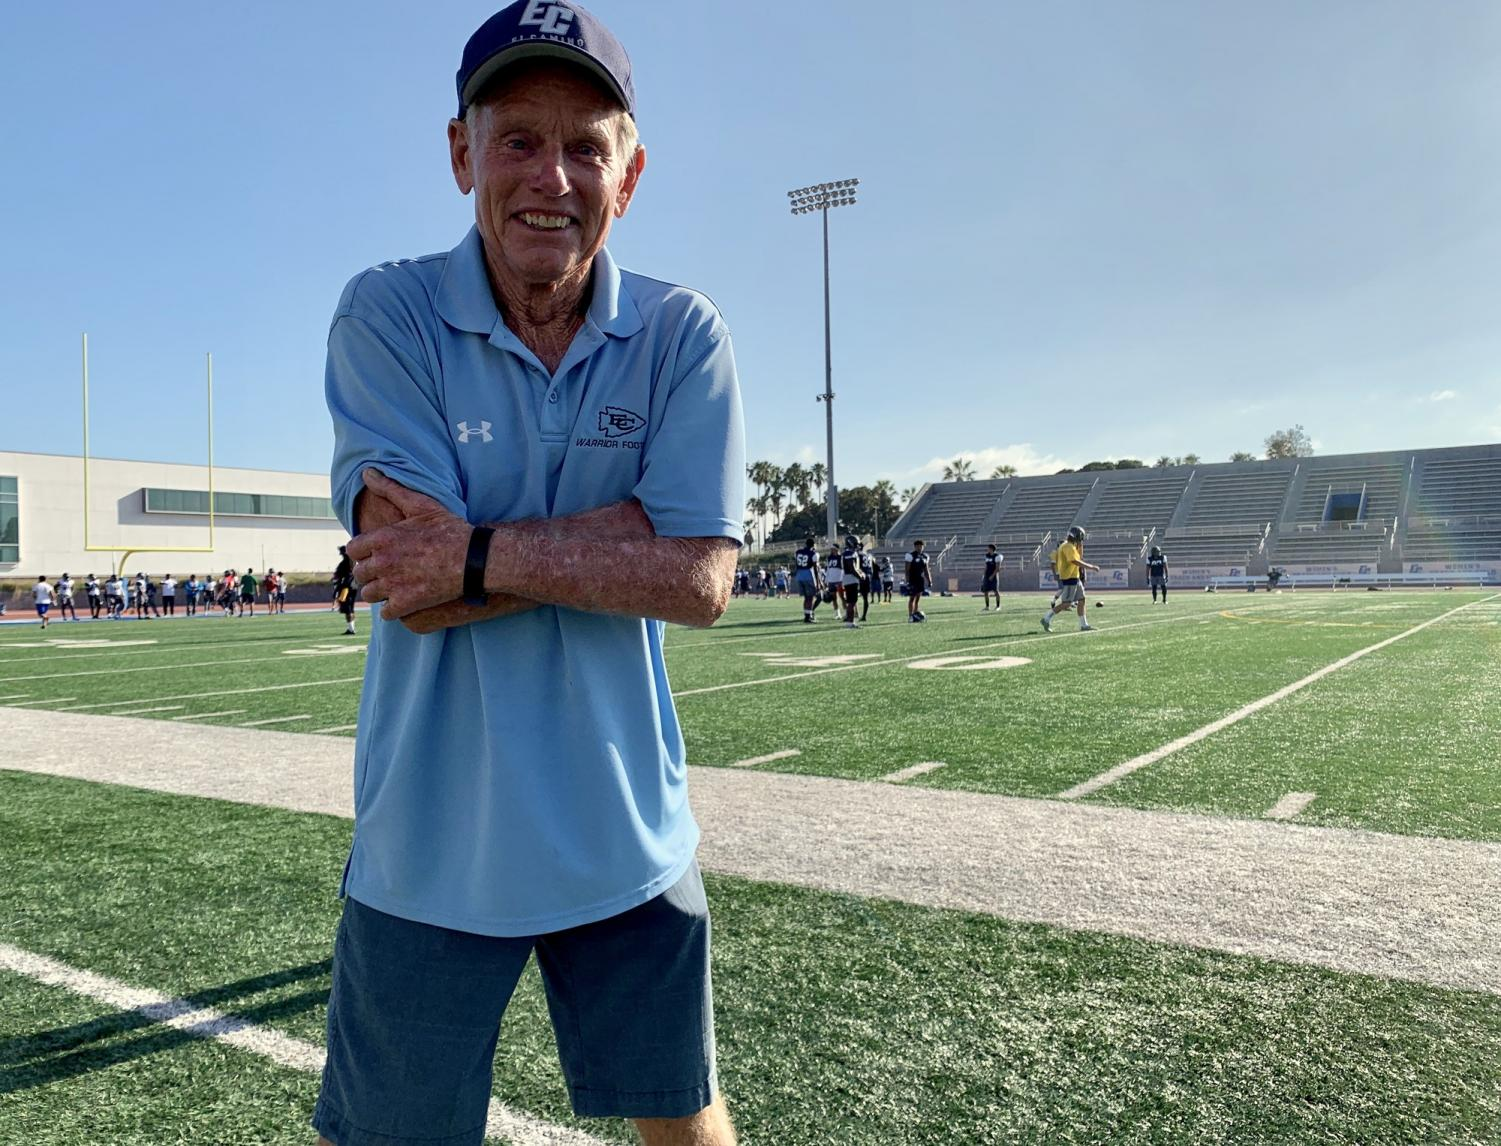 """Former head football coach John Featherstone stands in front of the Murdock Stadium field during football practice Wednesday, August 21. At the Warriors' homecoming game Nov. 16., The name """"Featherstone Field"""" will forever be attached to the arena where he once played in his youth as a Warrior and coached later on during his 31-year-old career. Jose Tobar / The Union"""